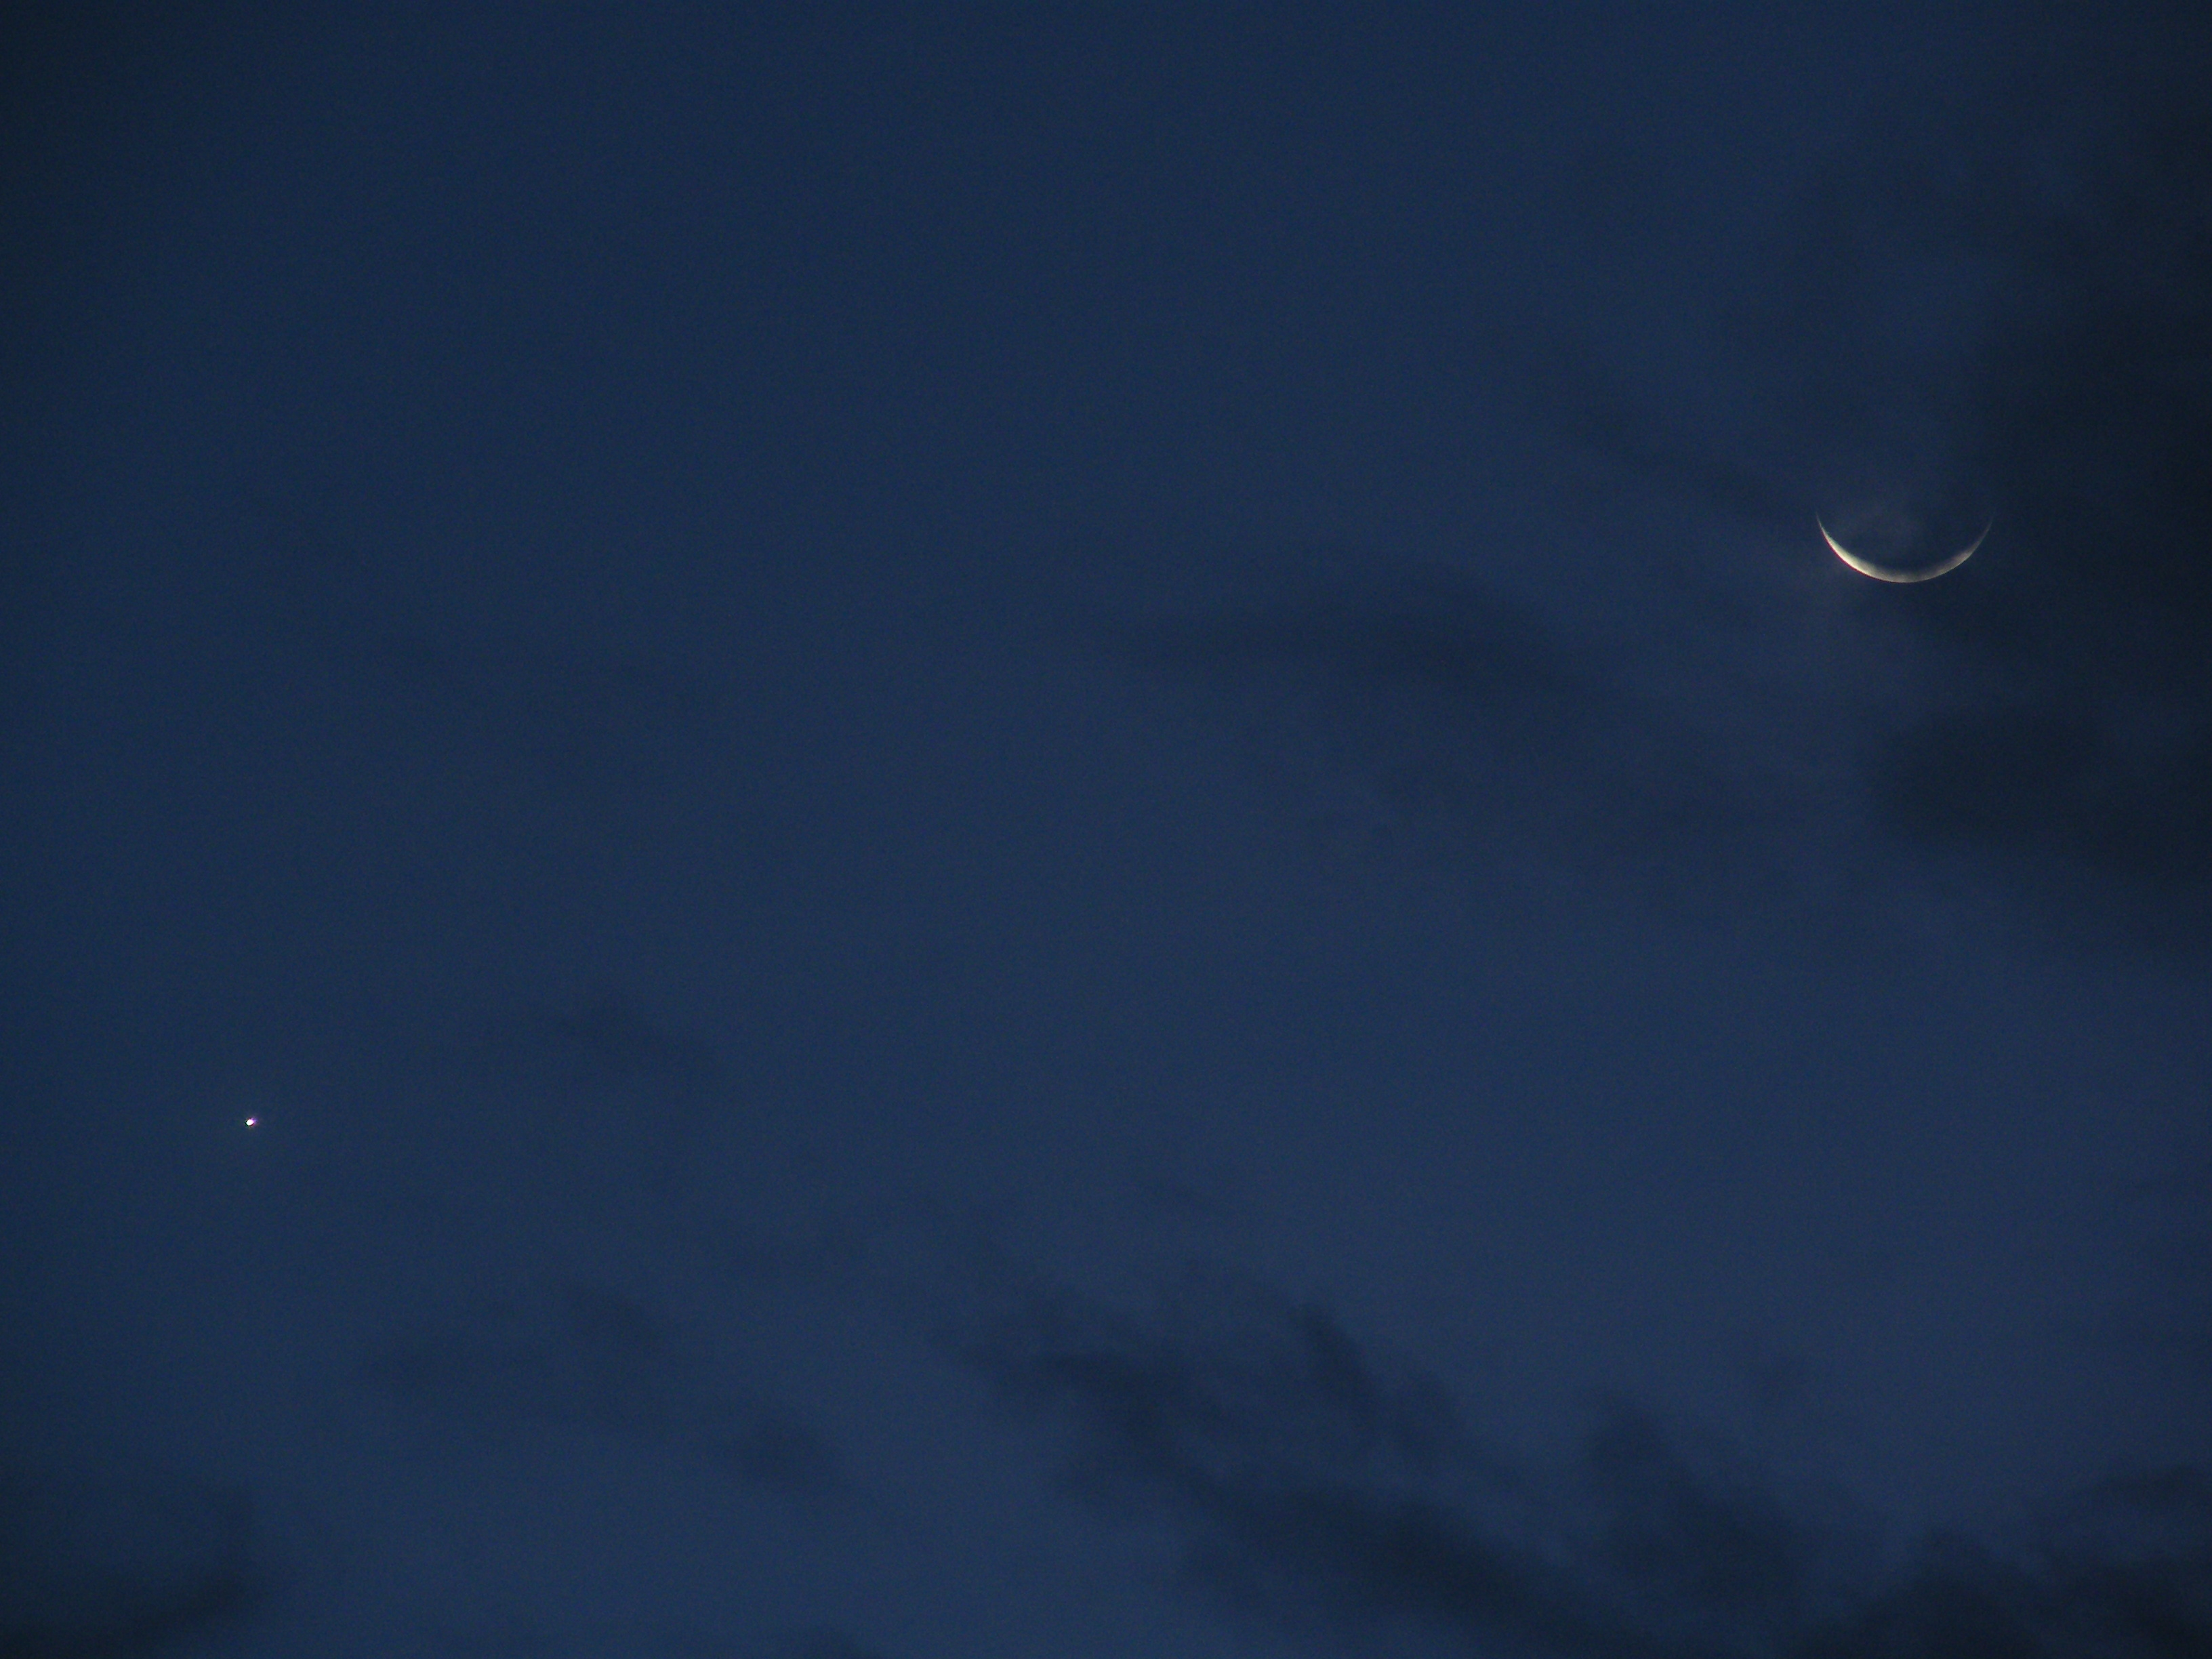 A Wink and a Smile: Venus and Moon Exchange Glances in Night Sky Photo